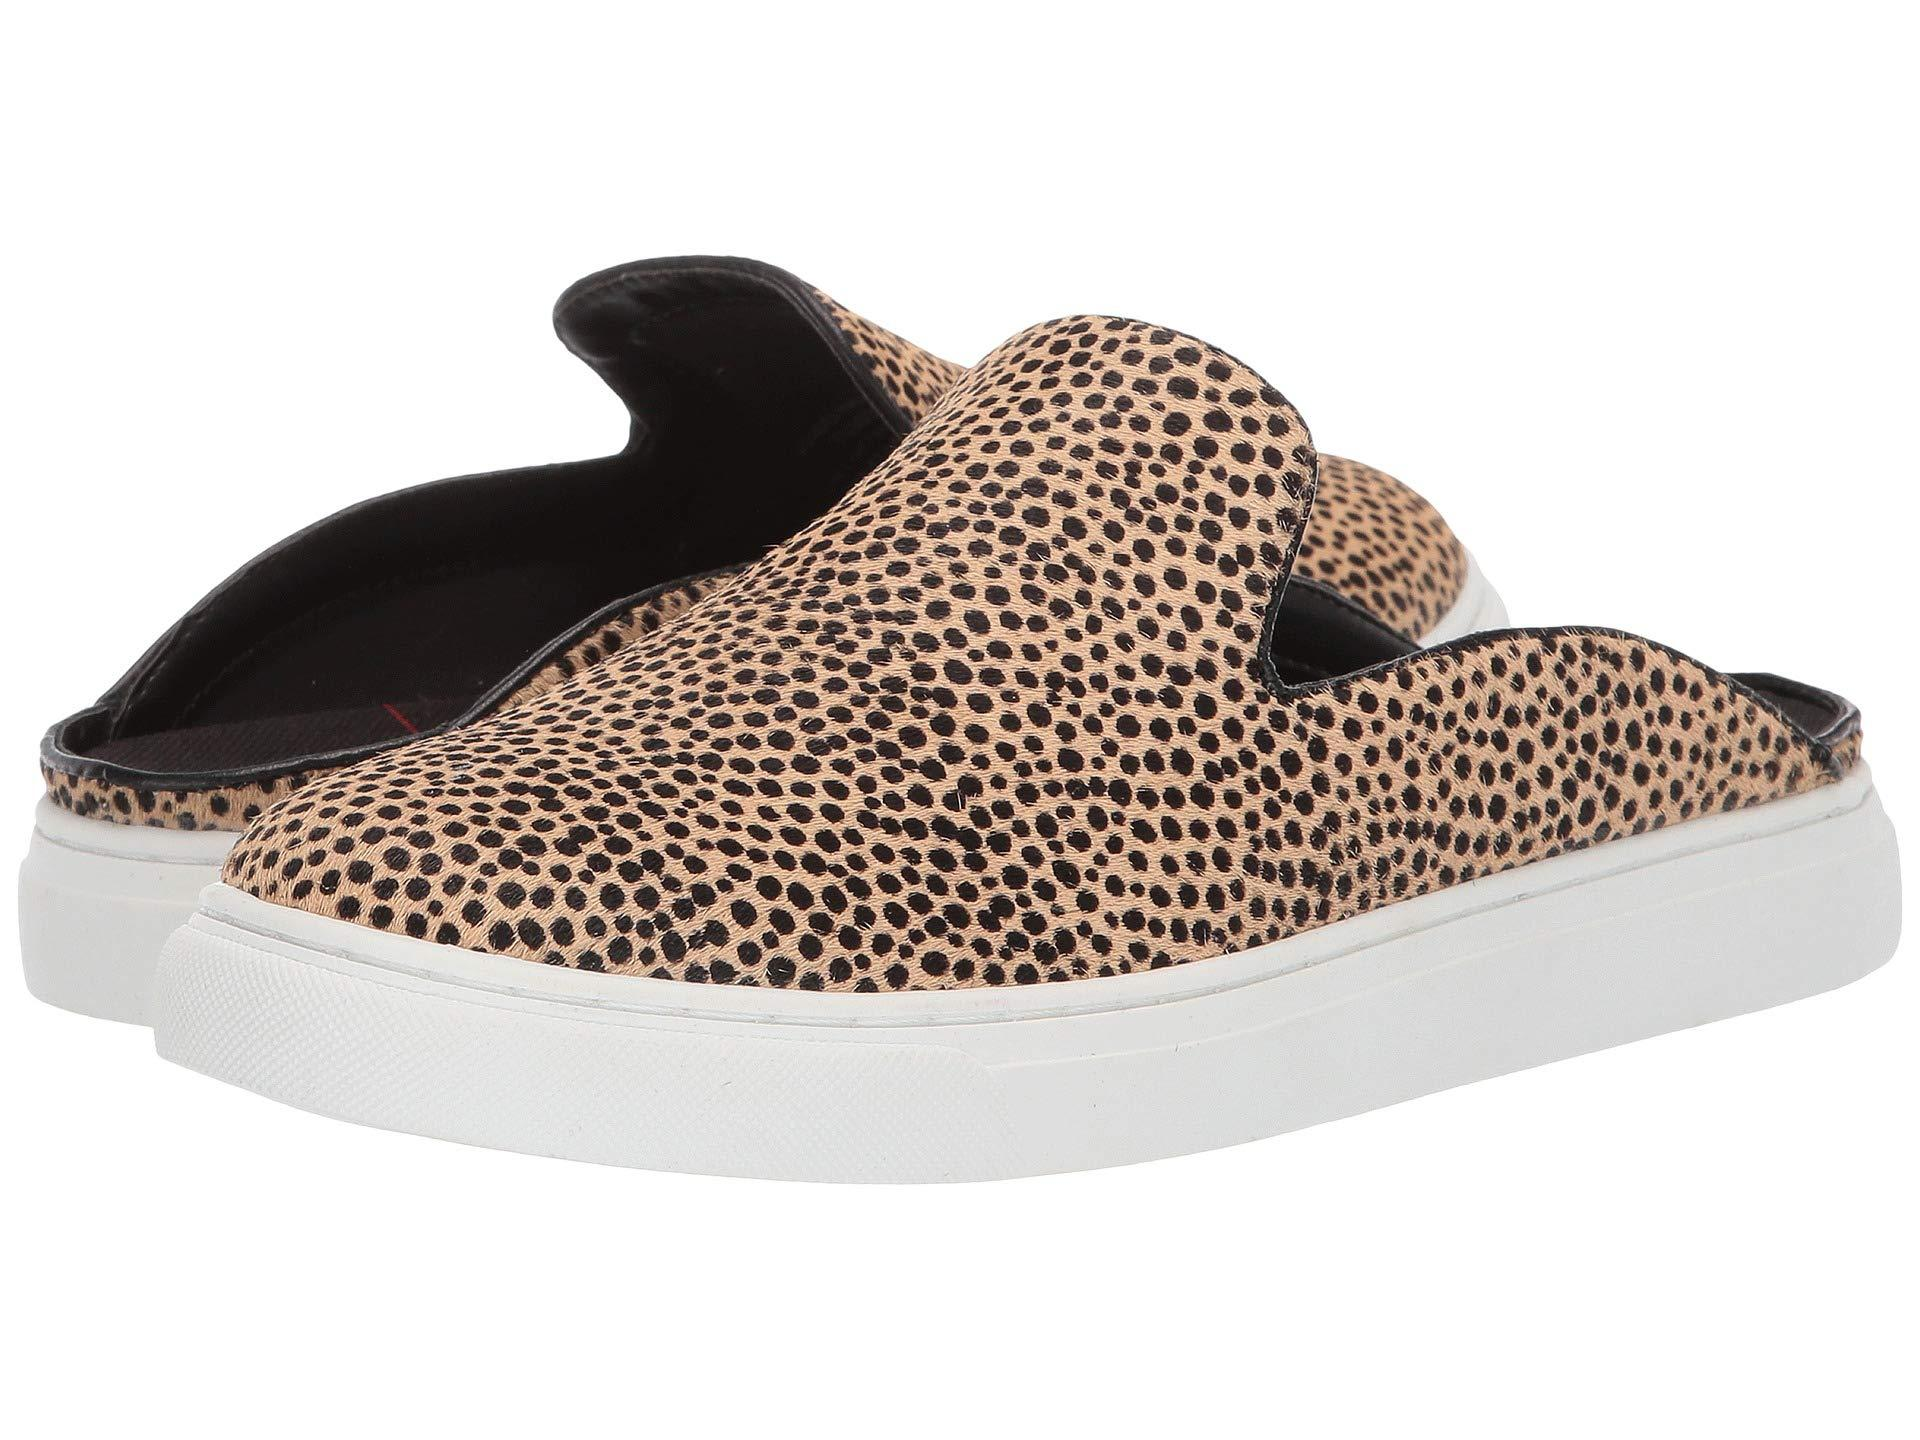 e83f3b28385 Lyst - Sole Society Belynda 4 (dotted Haircalf) Women s Shoes